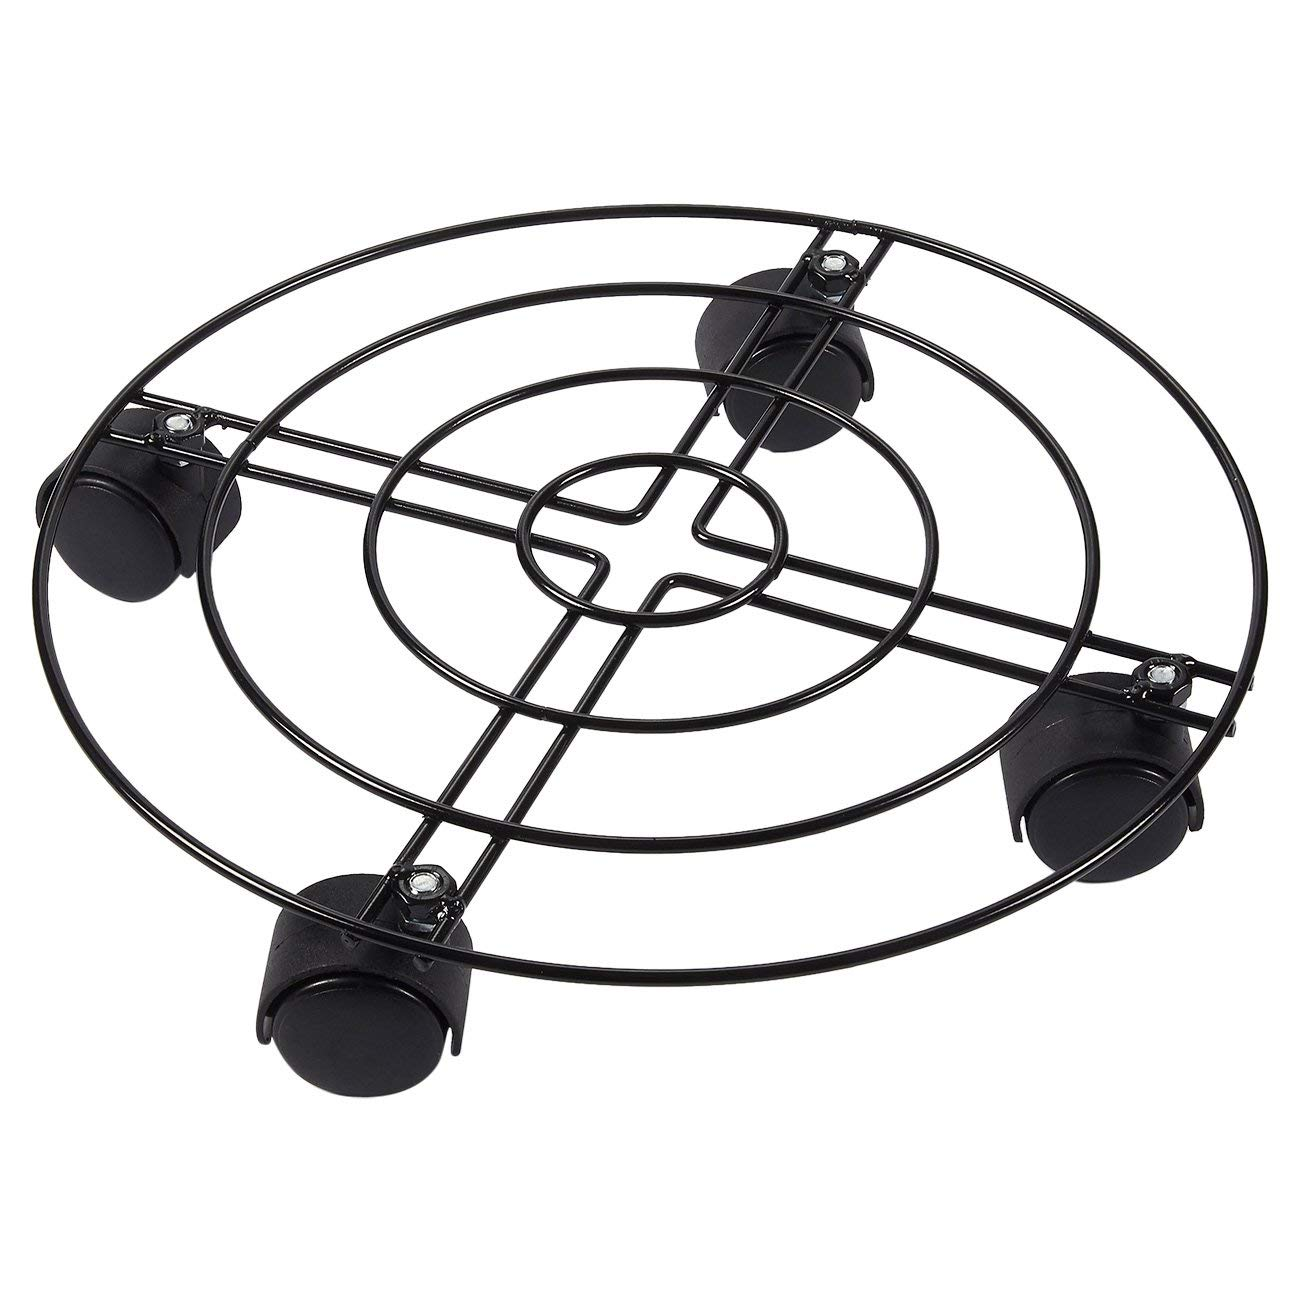 Metal Plant Caddy - Iron Plant Dolly on Round Rack, Rustproof Flower Pot Stand with Heavy Duty Wheels for Indoor, Outdoor, Home, and Garden in Black